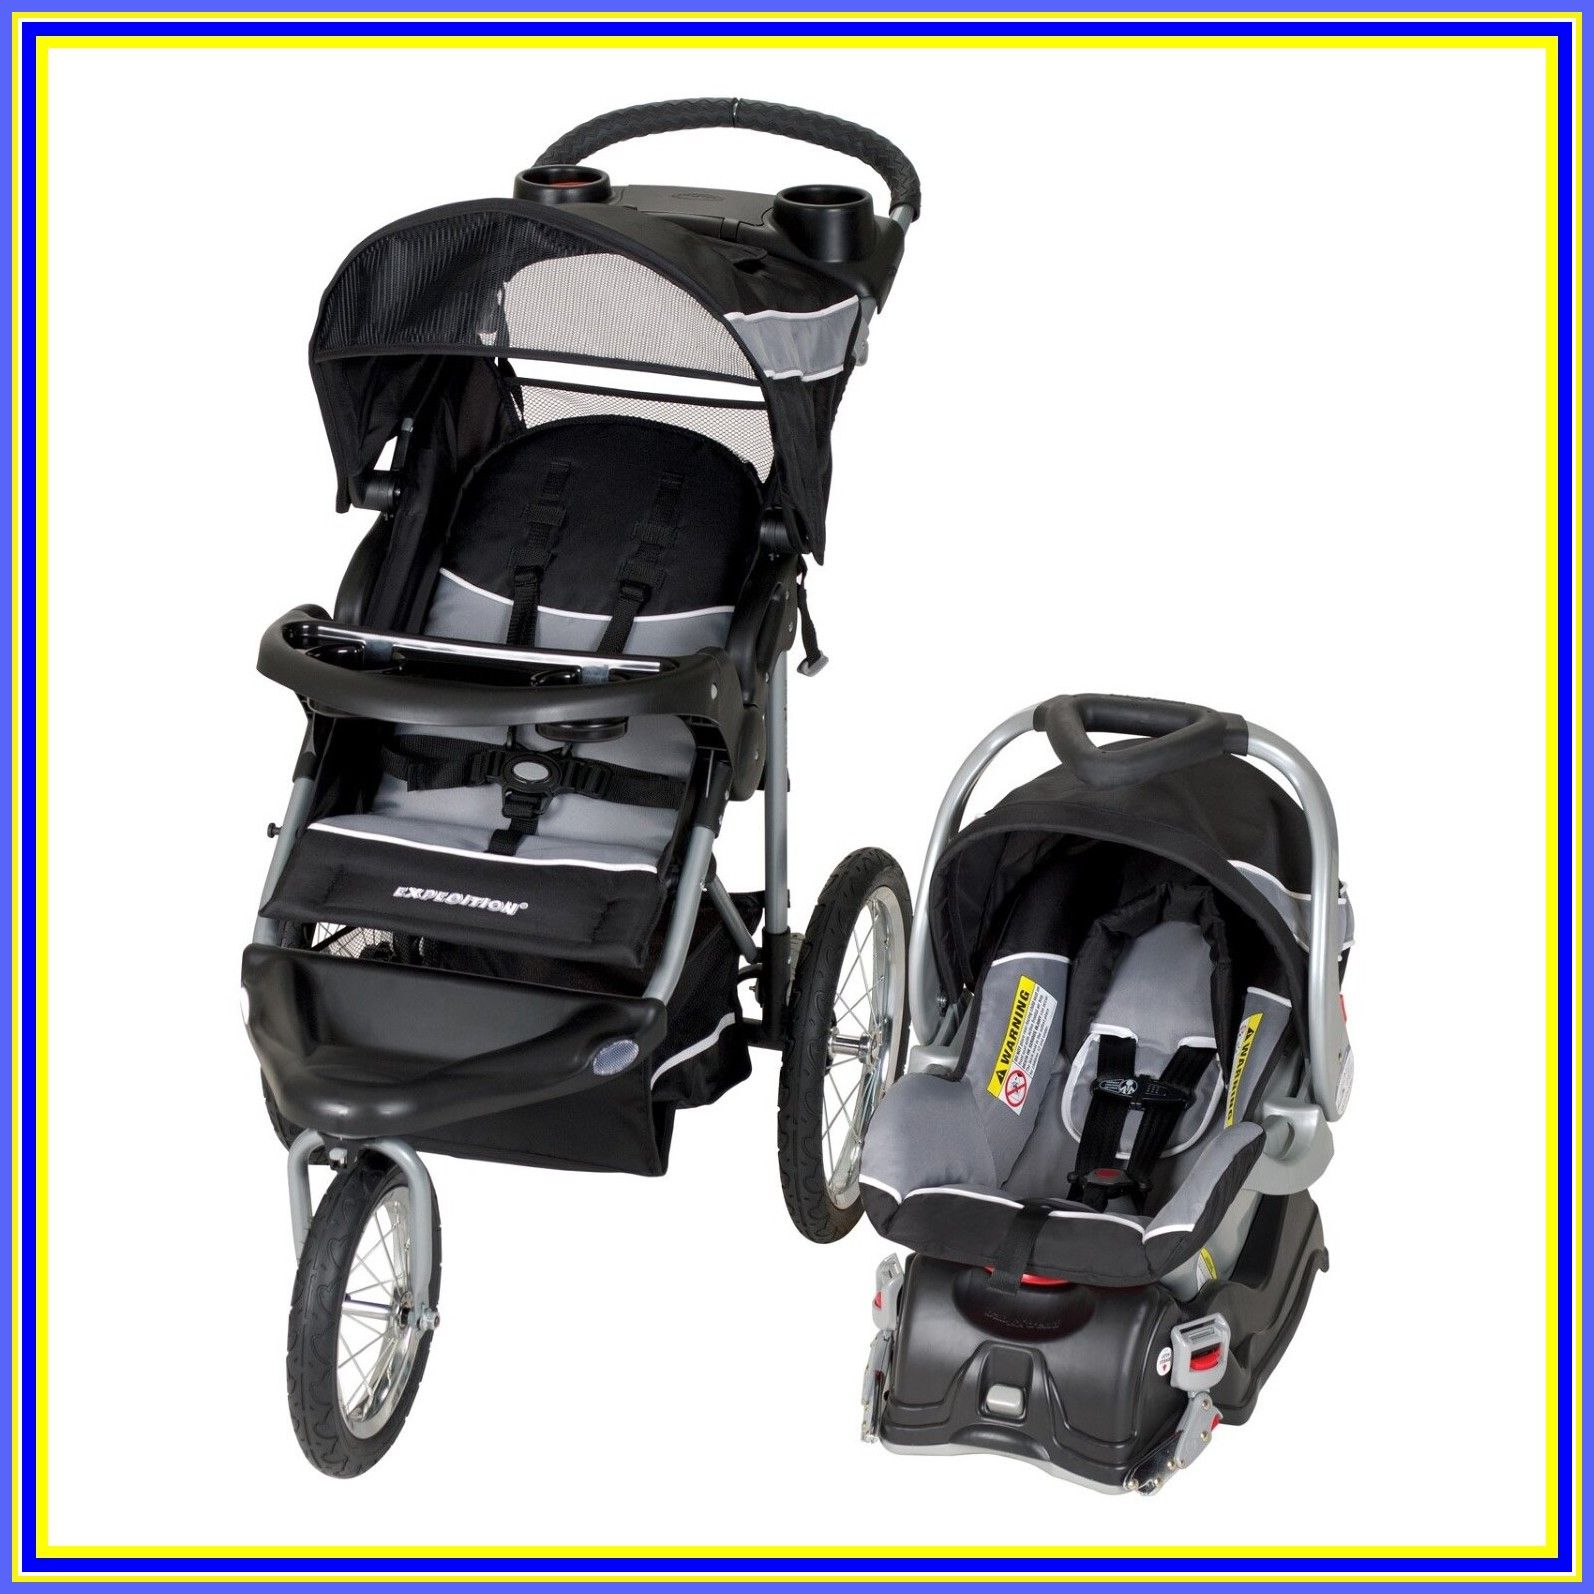 113 reference of expedition jogging stroller single in